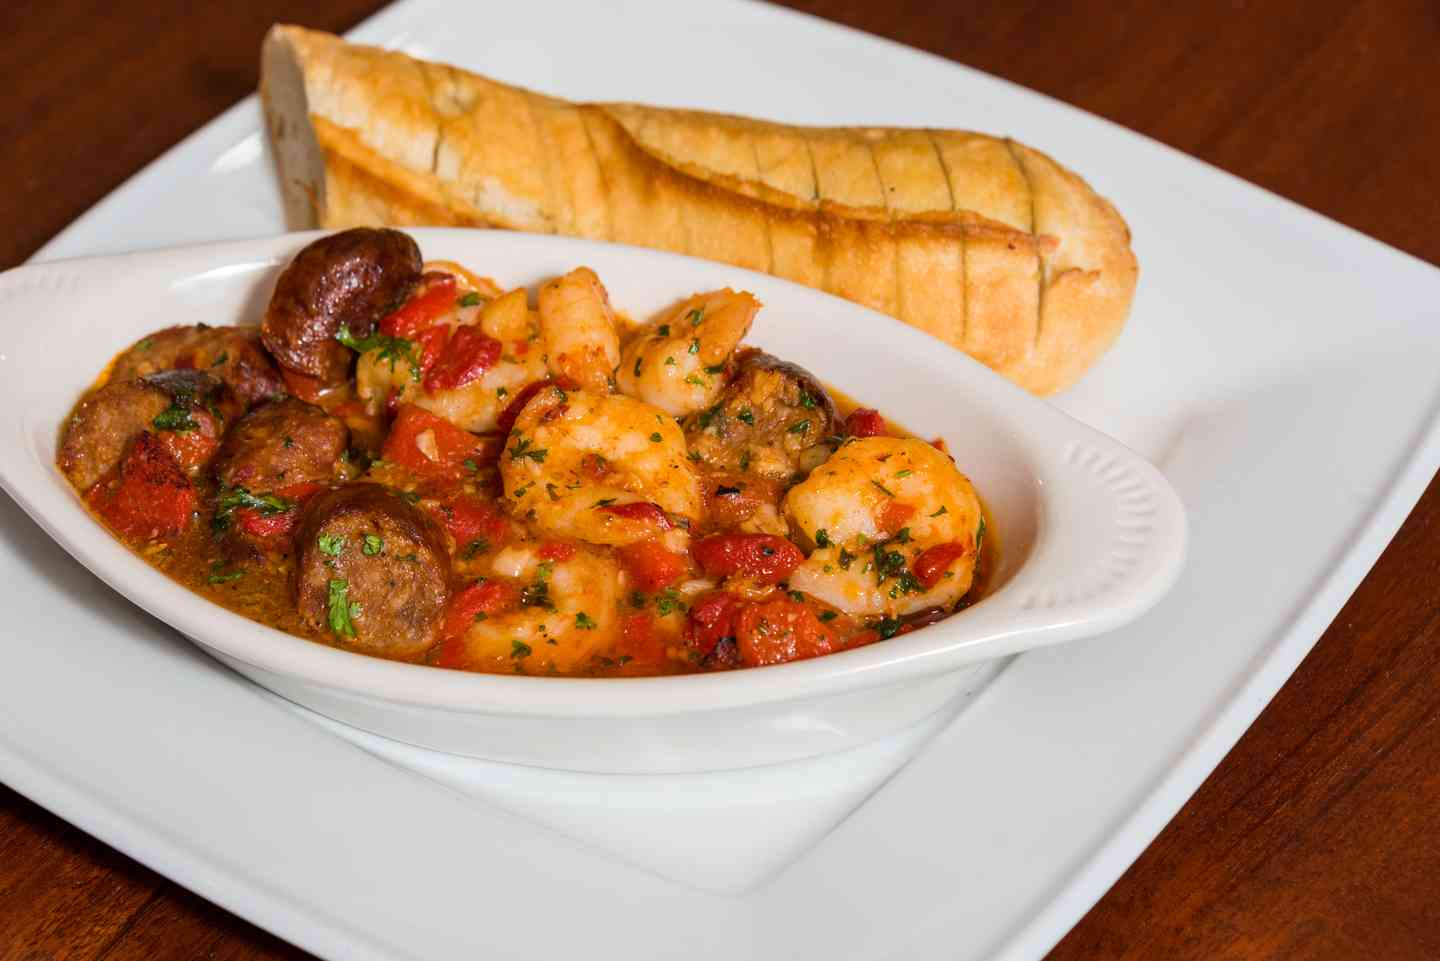 Garlic Shrimp & Sausage Sauté